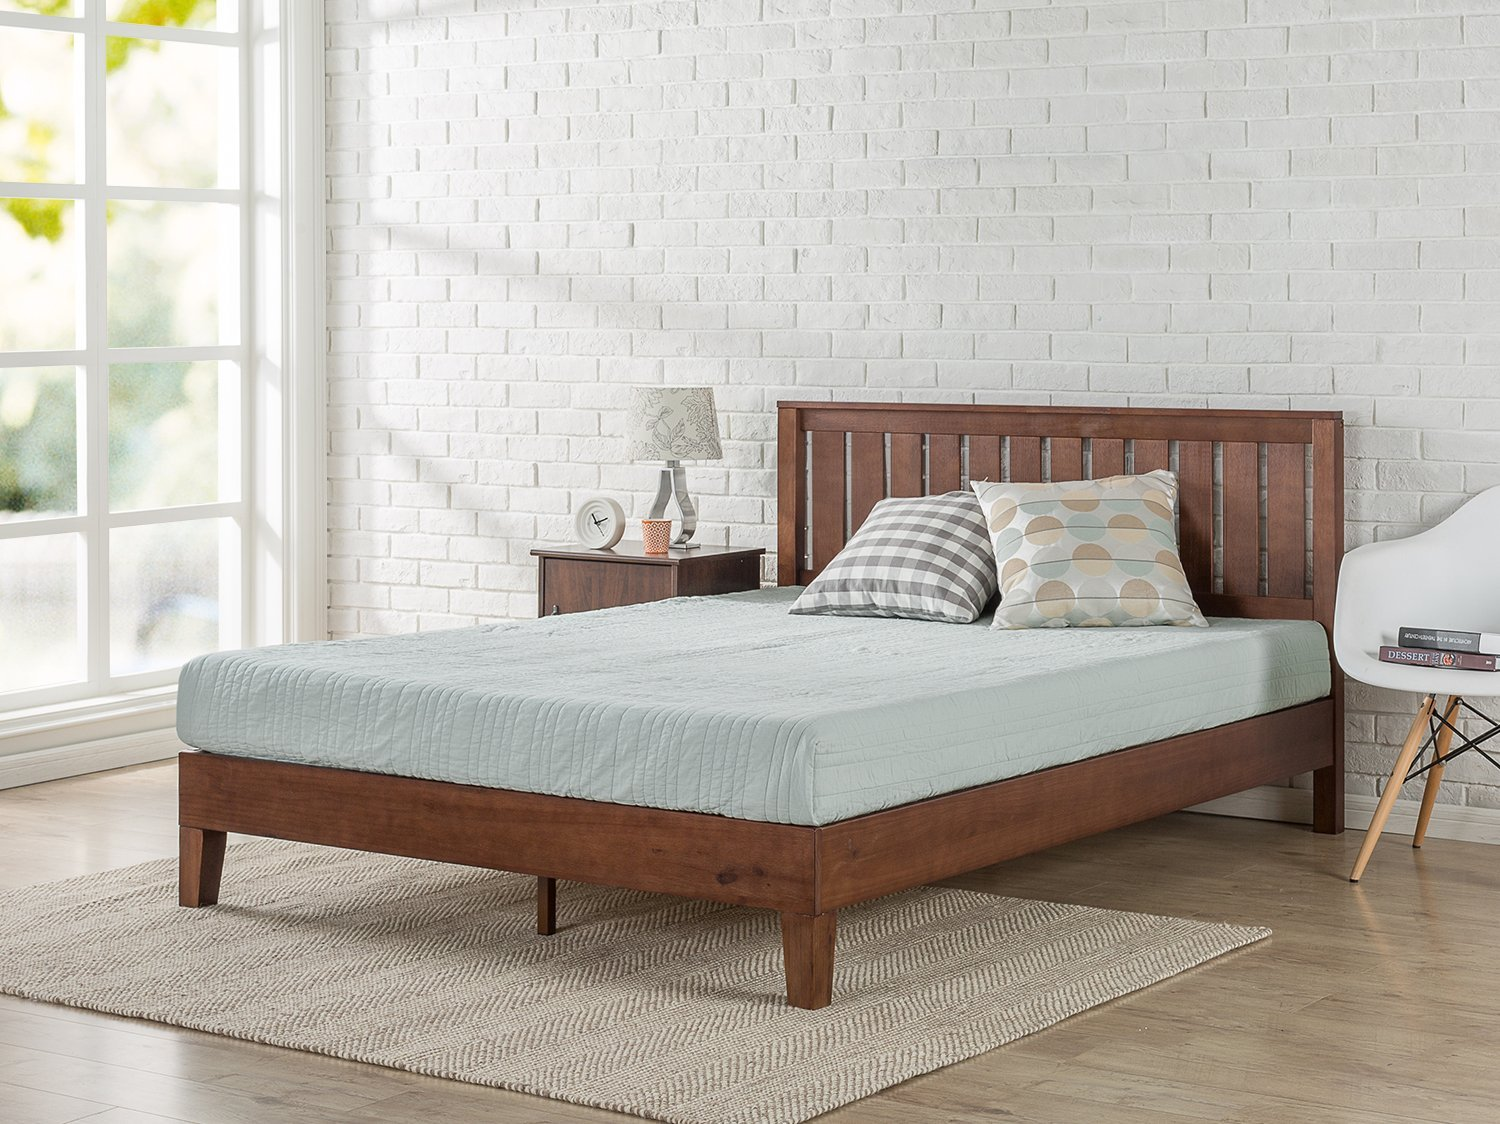 Amazon.com: Zinus 12 Inch Deluxe Wood Platform Bed with Headboard/No ...